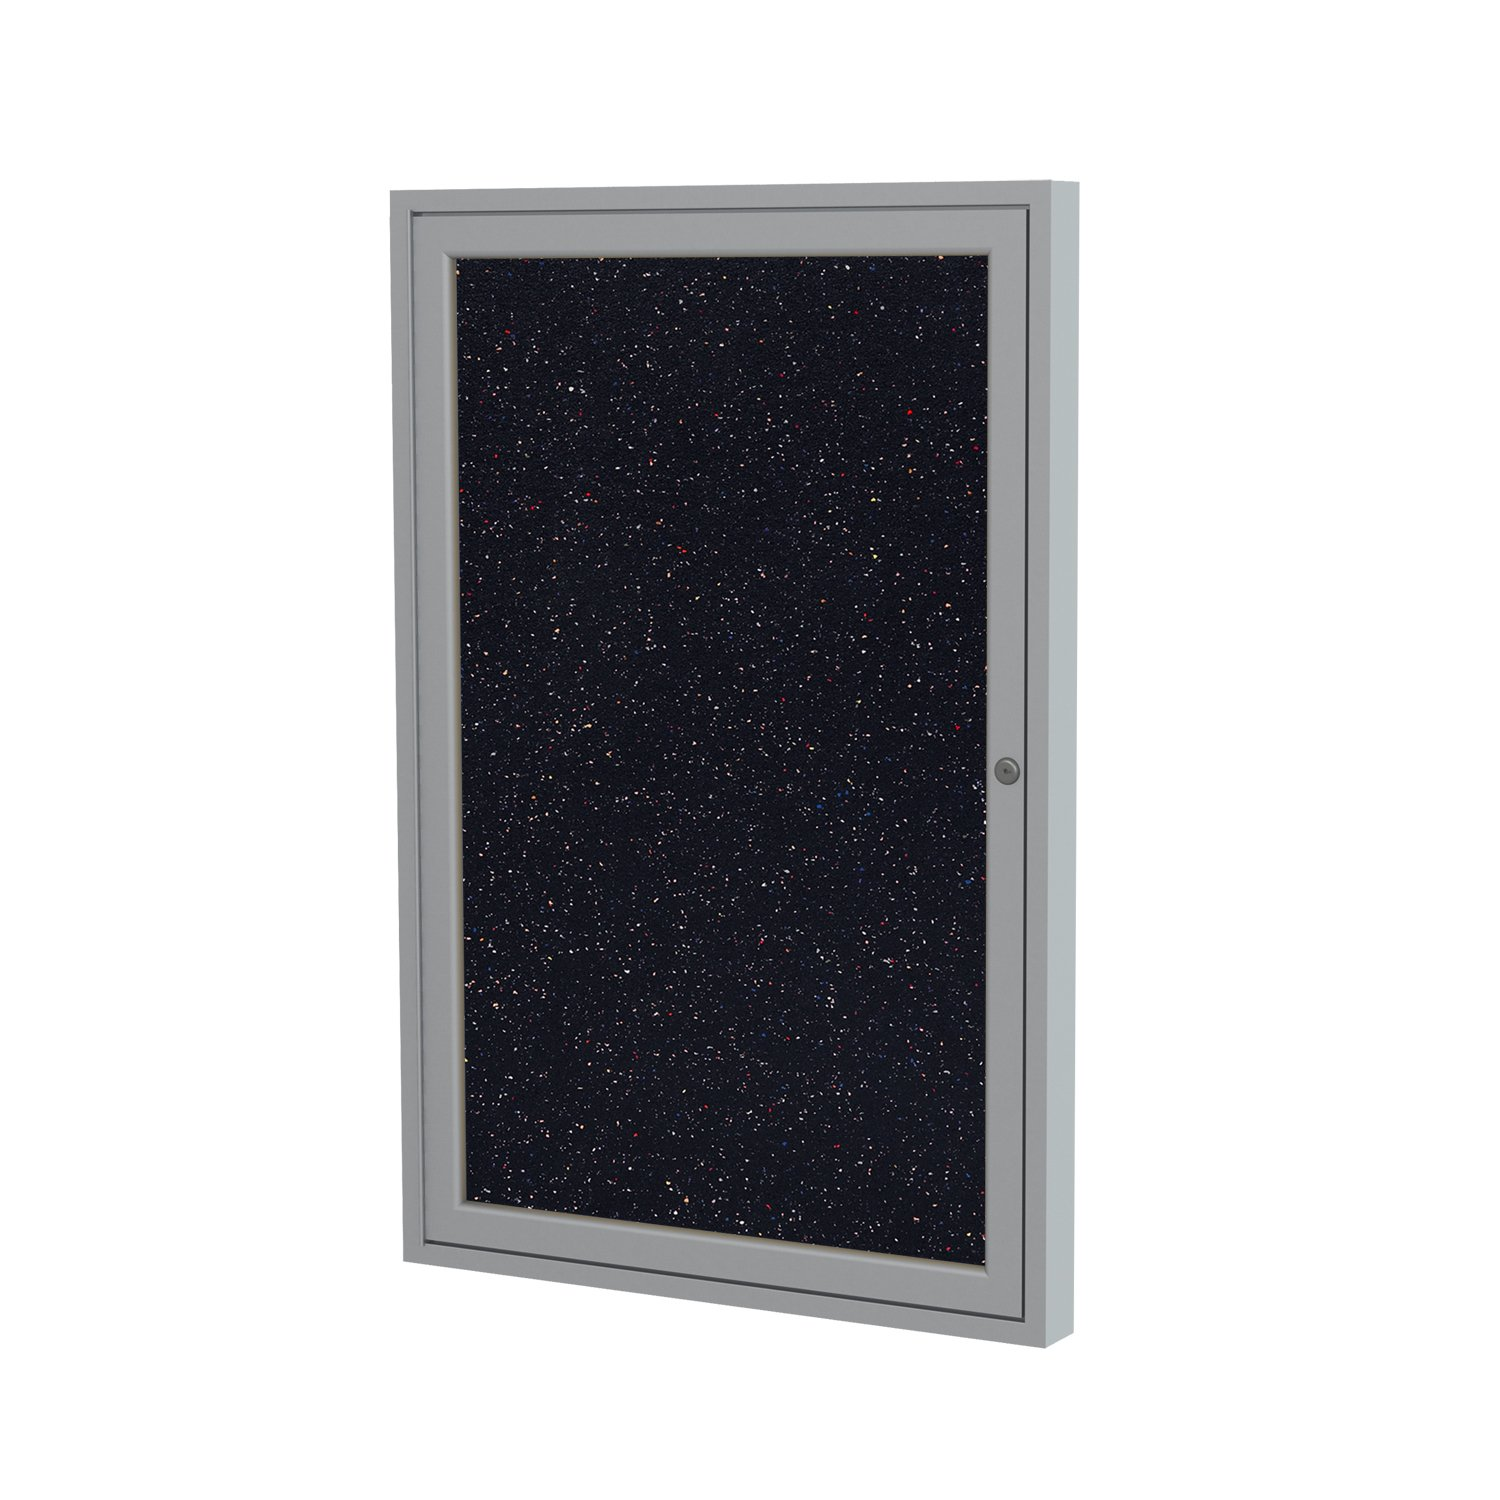 Ghent 36''x30'' 1-Door indoor Enclosed Recycled Rubber Bulletin Board, Shatter Resistant, with Lock, Satin Aluminum Frame,Confetti (PA13630TR-CF) ,Made in the USA